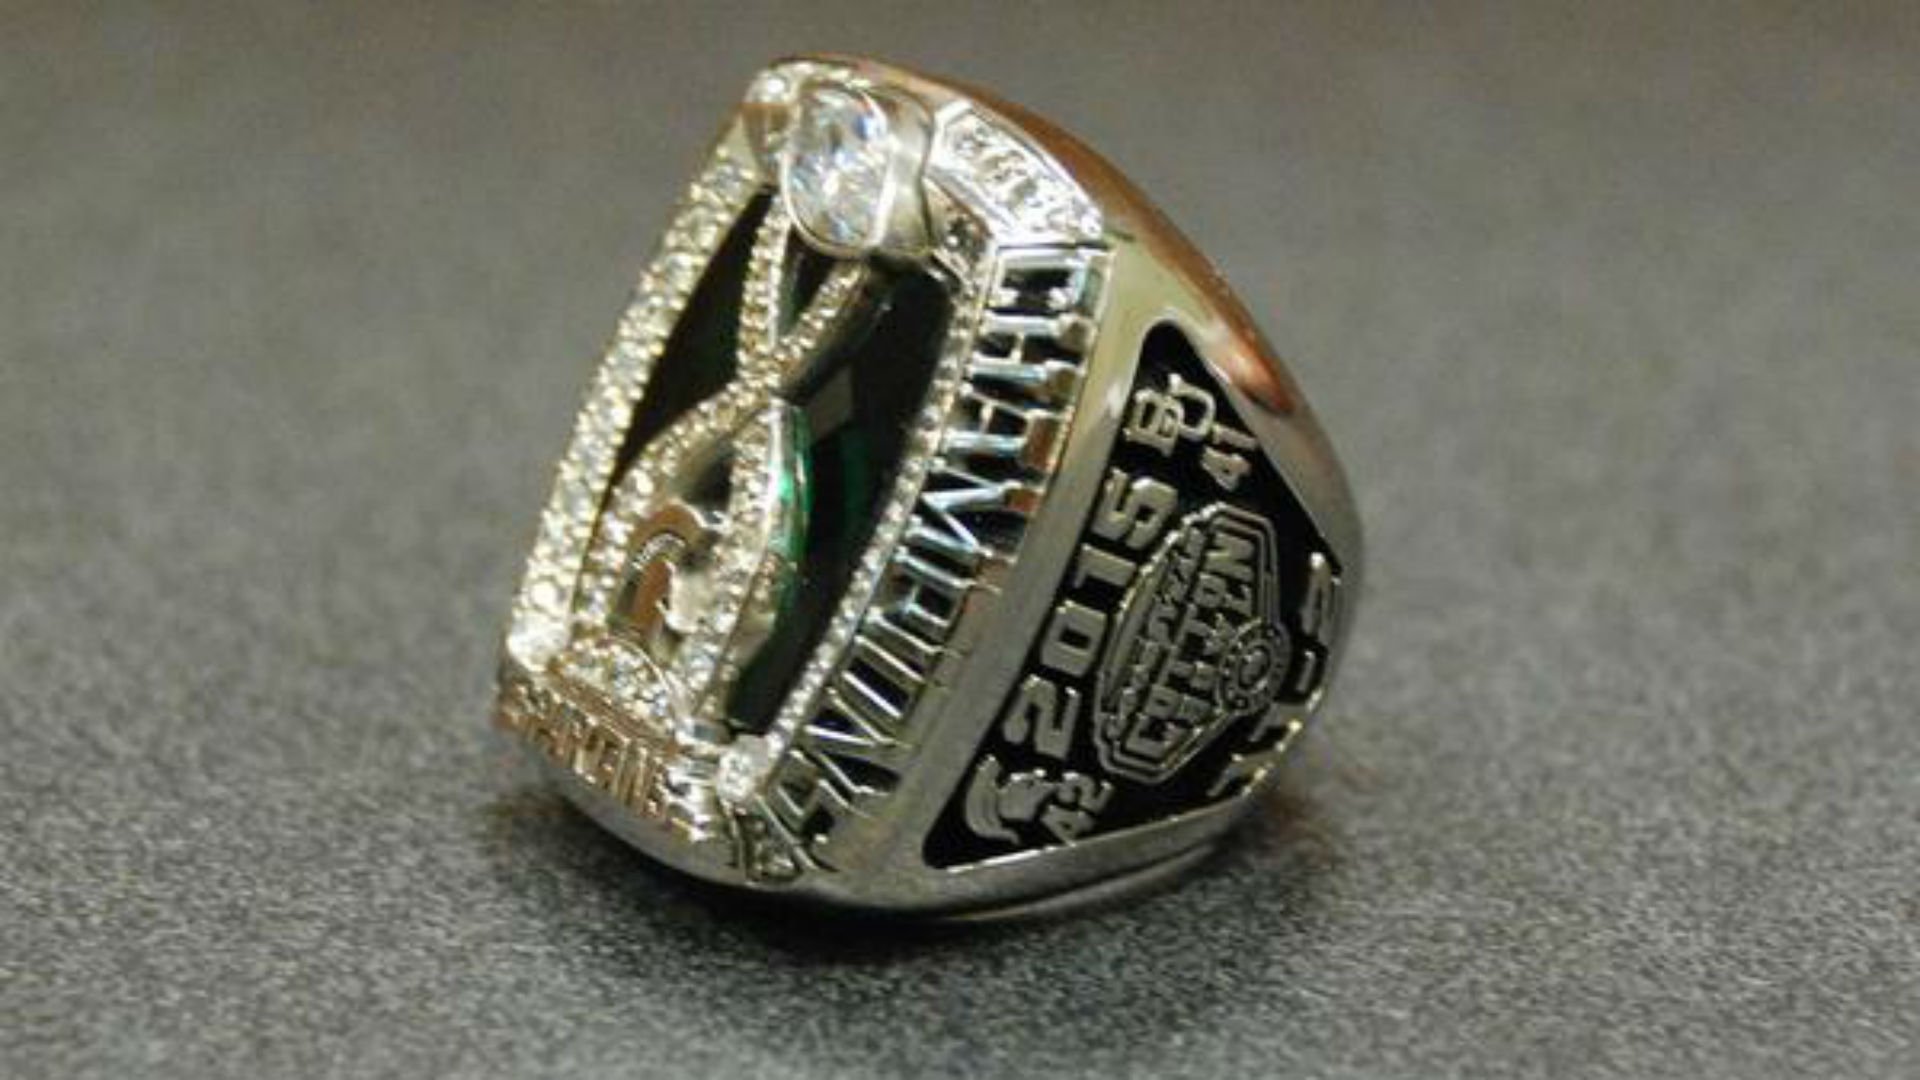 around football here king community rings a colors today remind usa michigan to msu is spartans everyone only state who the earns